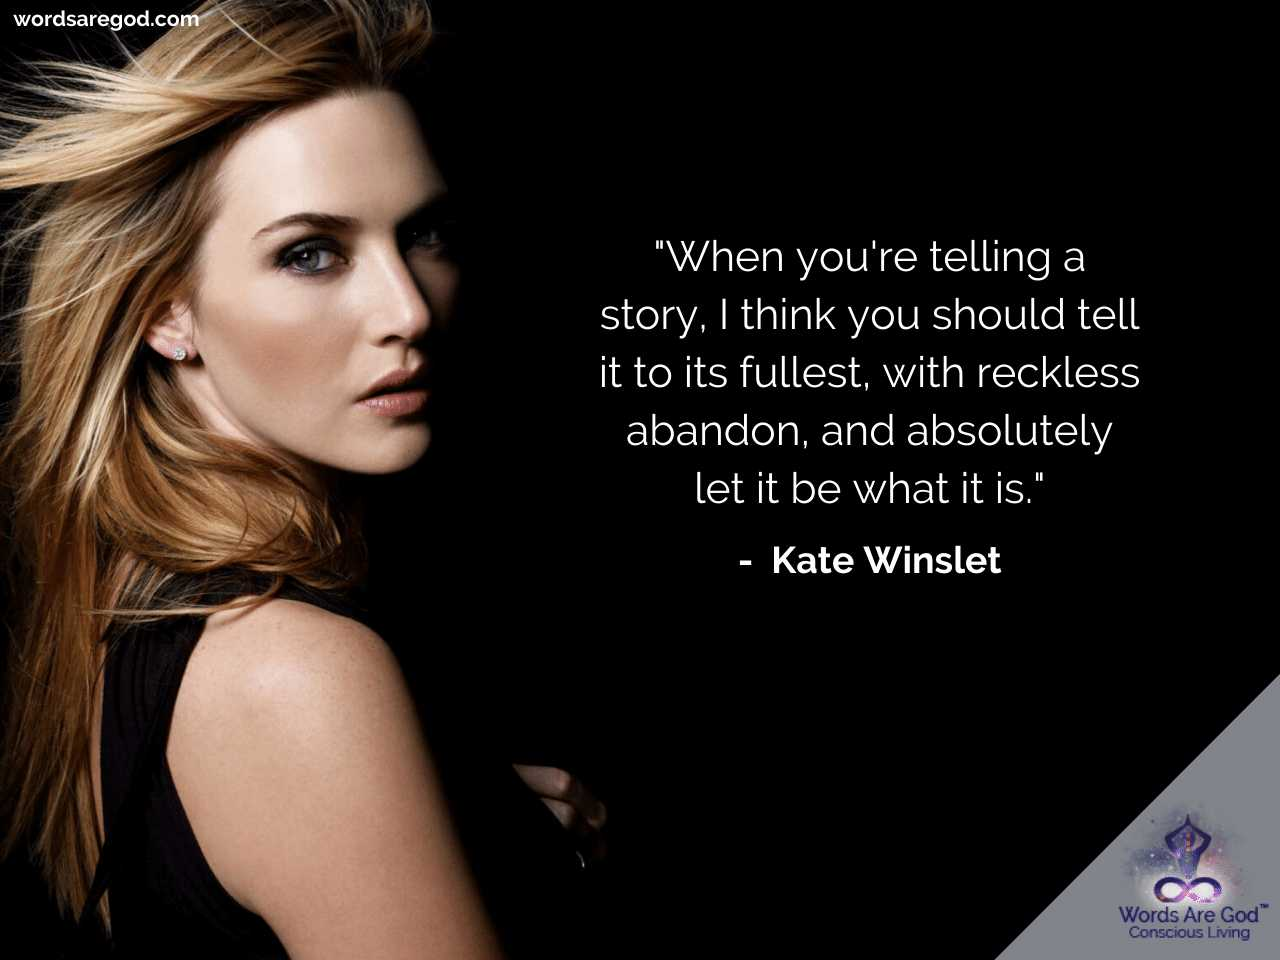 Kate Winslet Inspirational Quotes by Kate Winslet